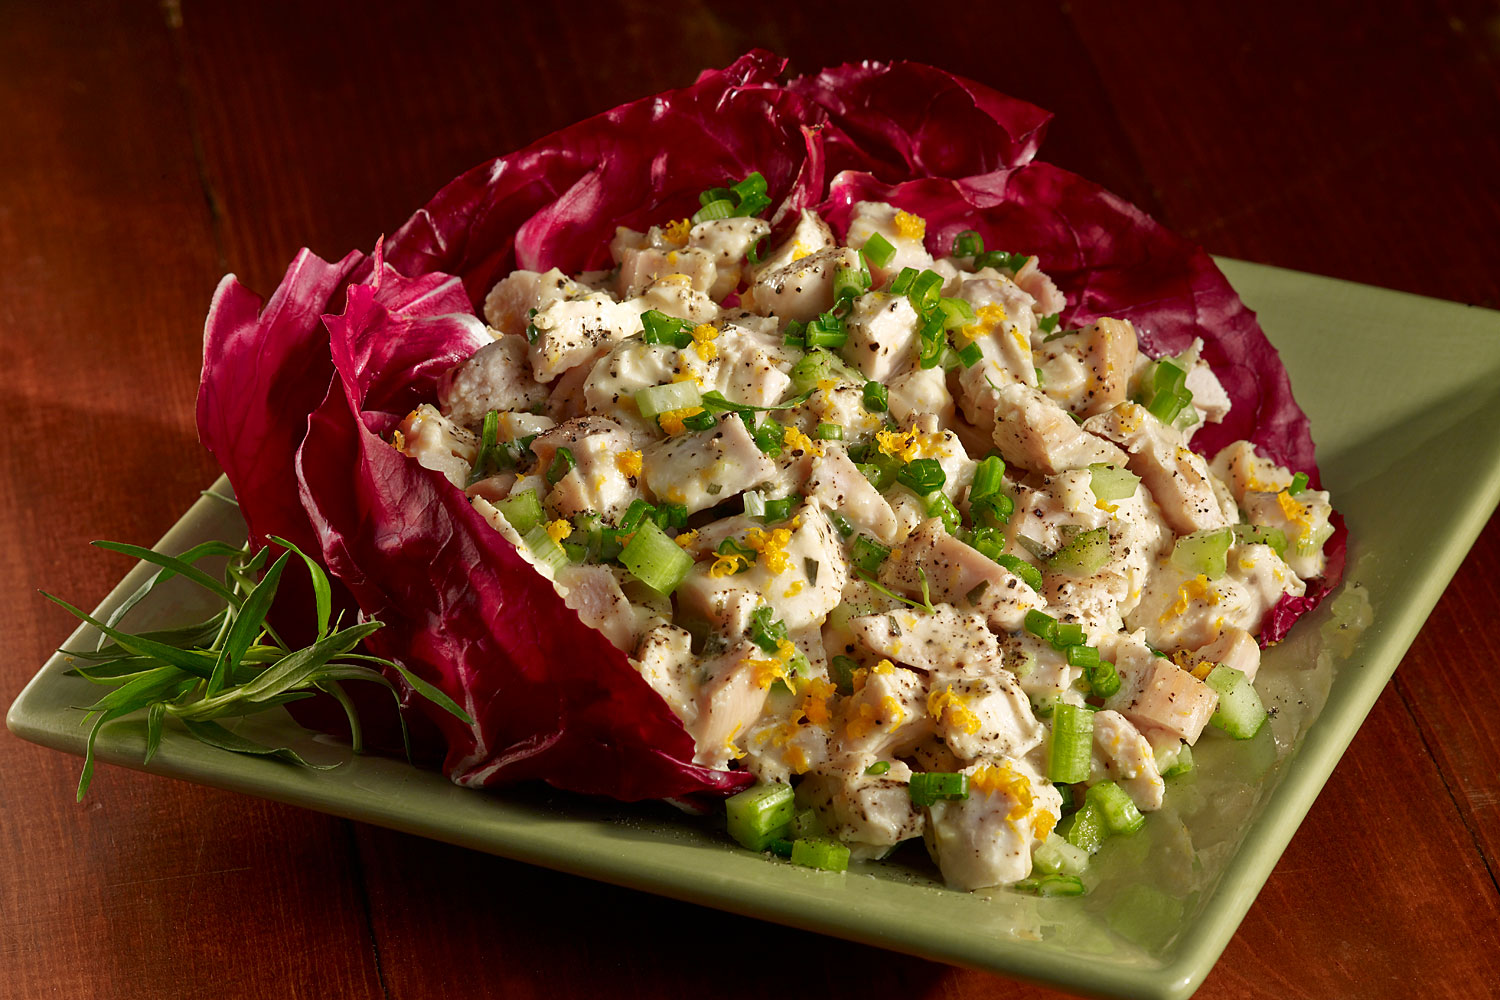 Summery Lemon Tarragon Chicken Salad